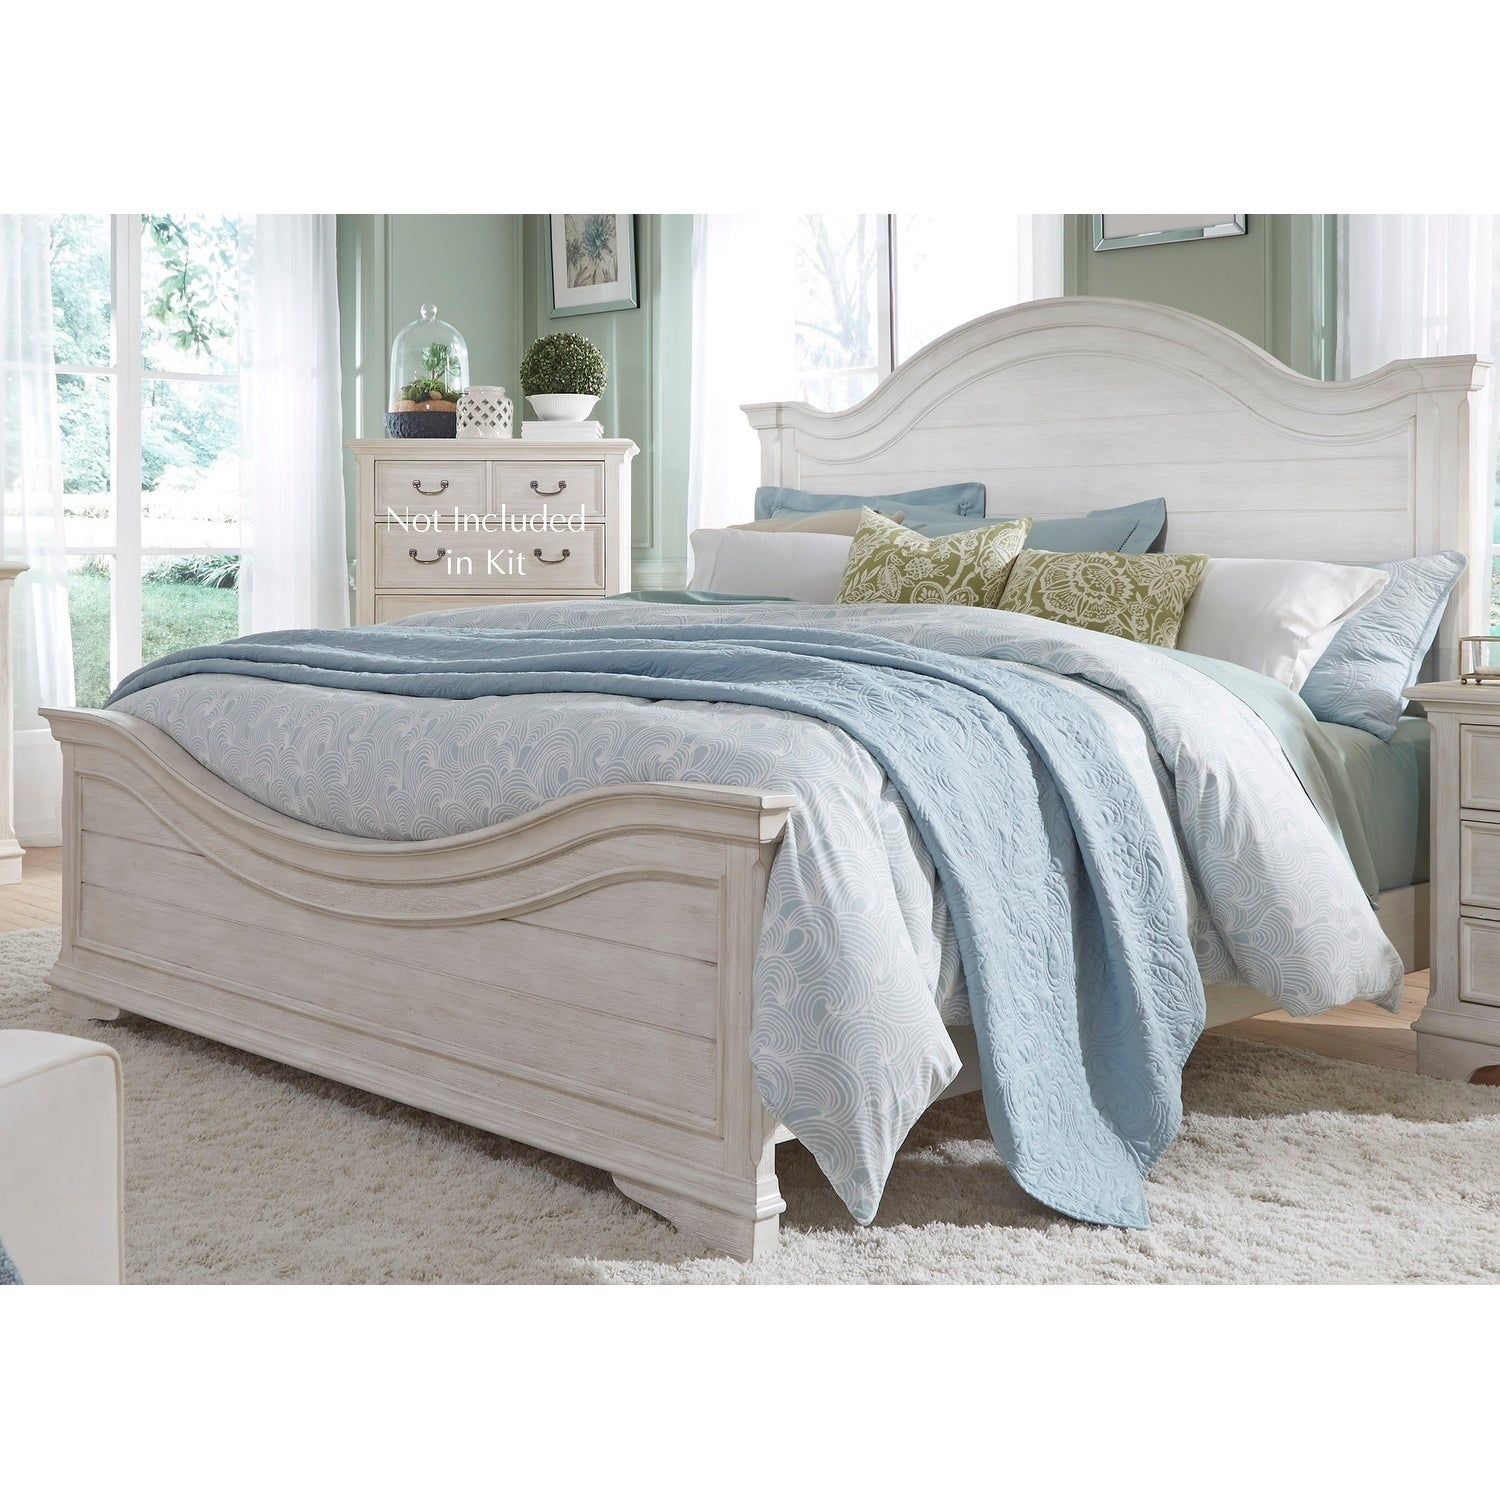 Shop Bayside Antique White Panel Bed Set On Sale Free Shipping